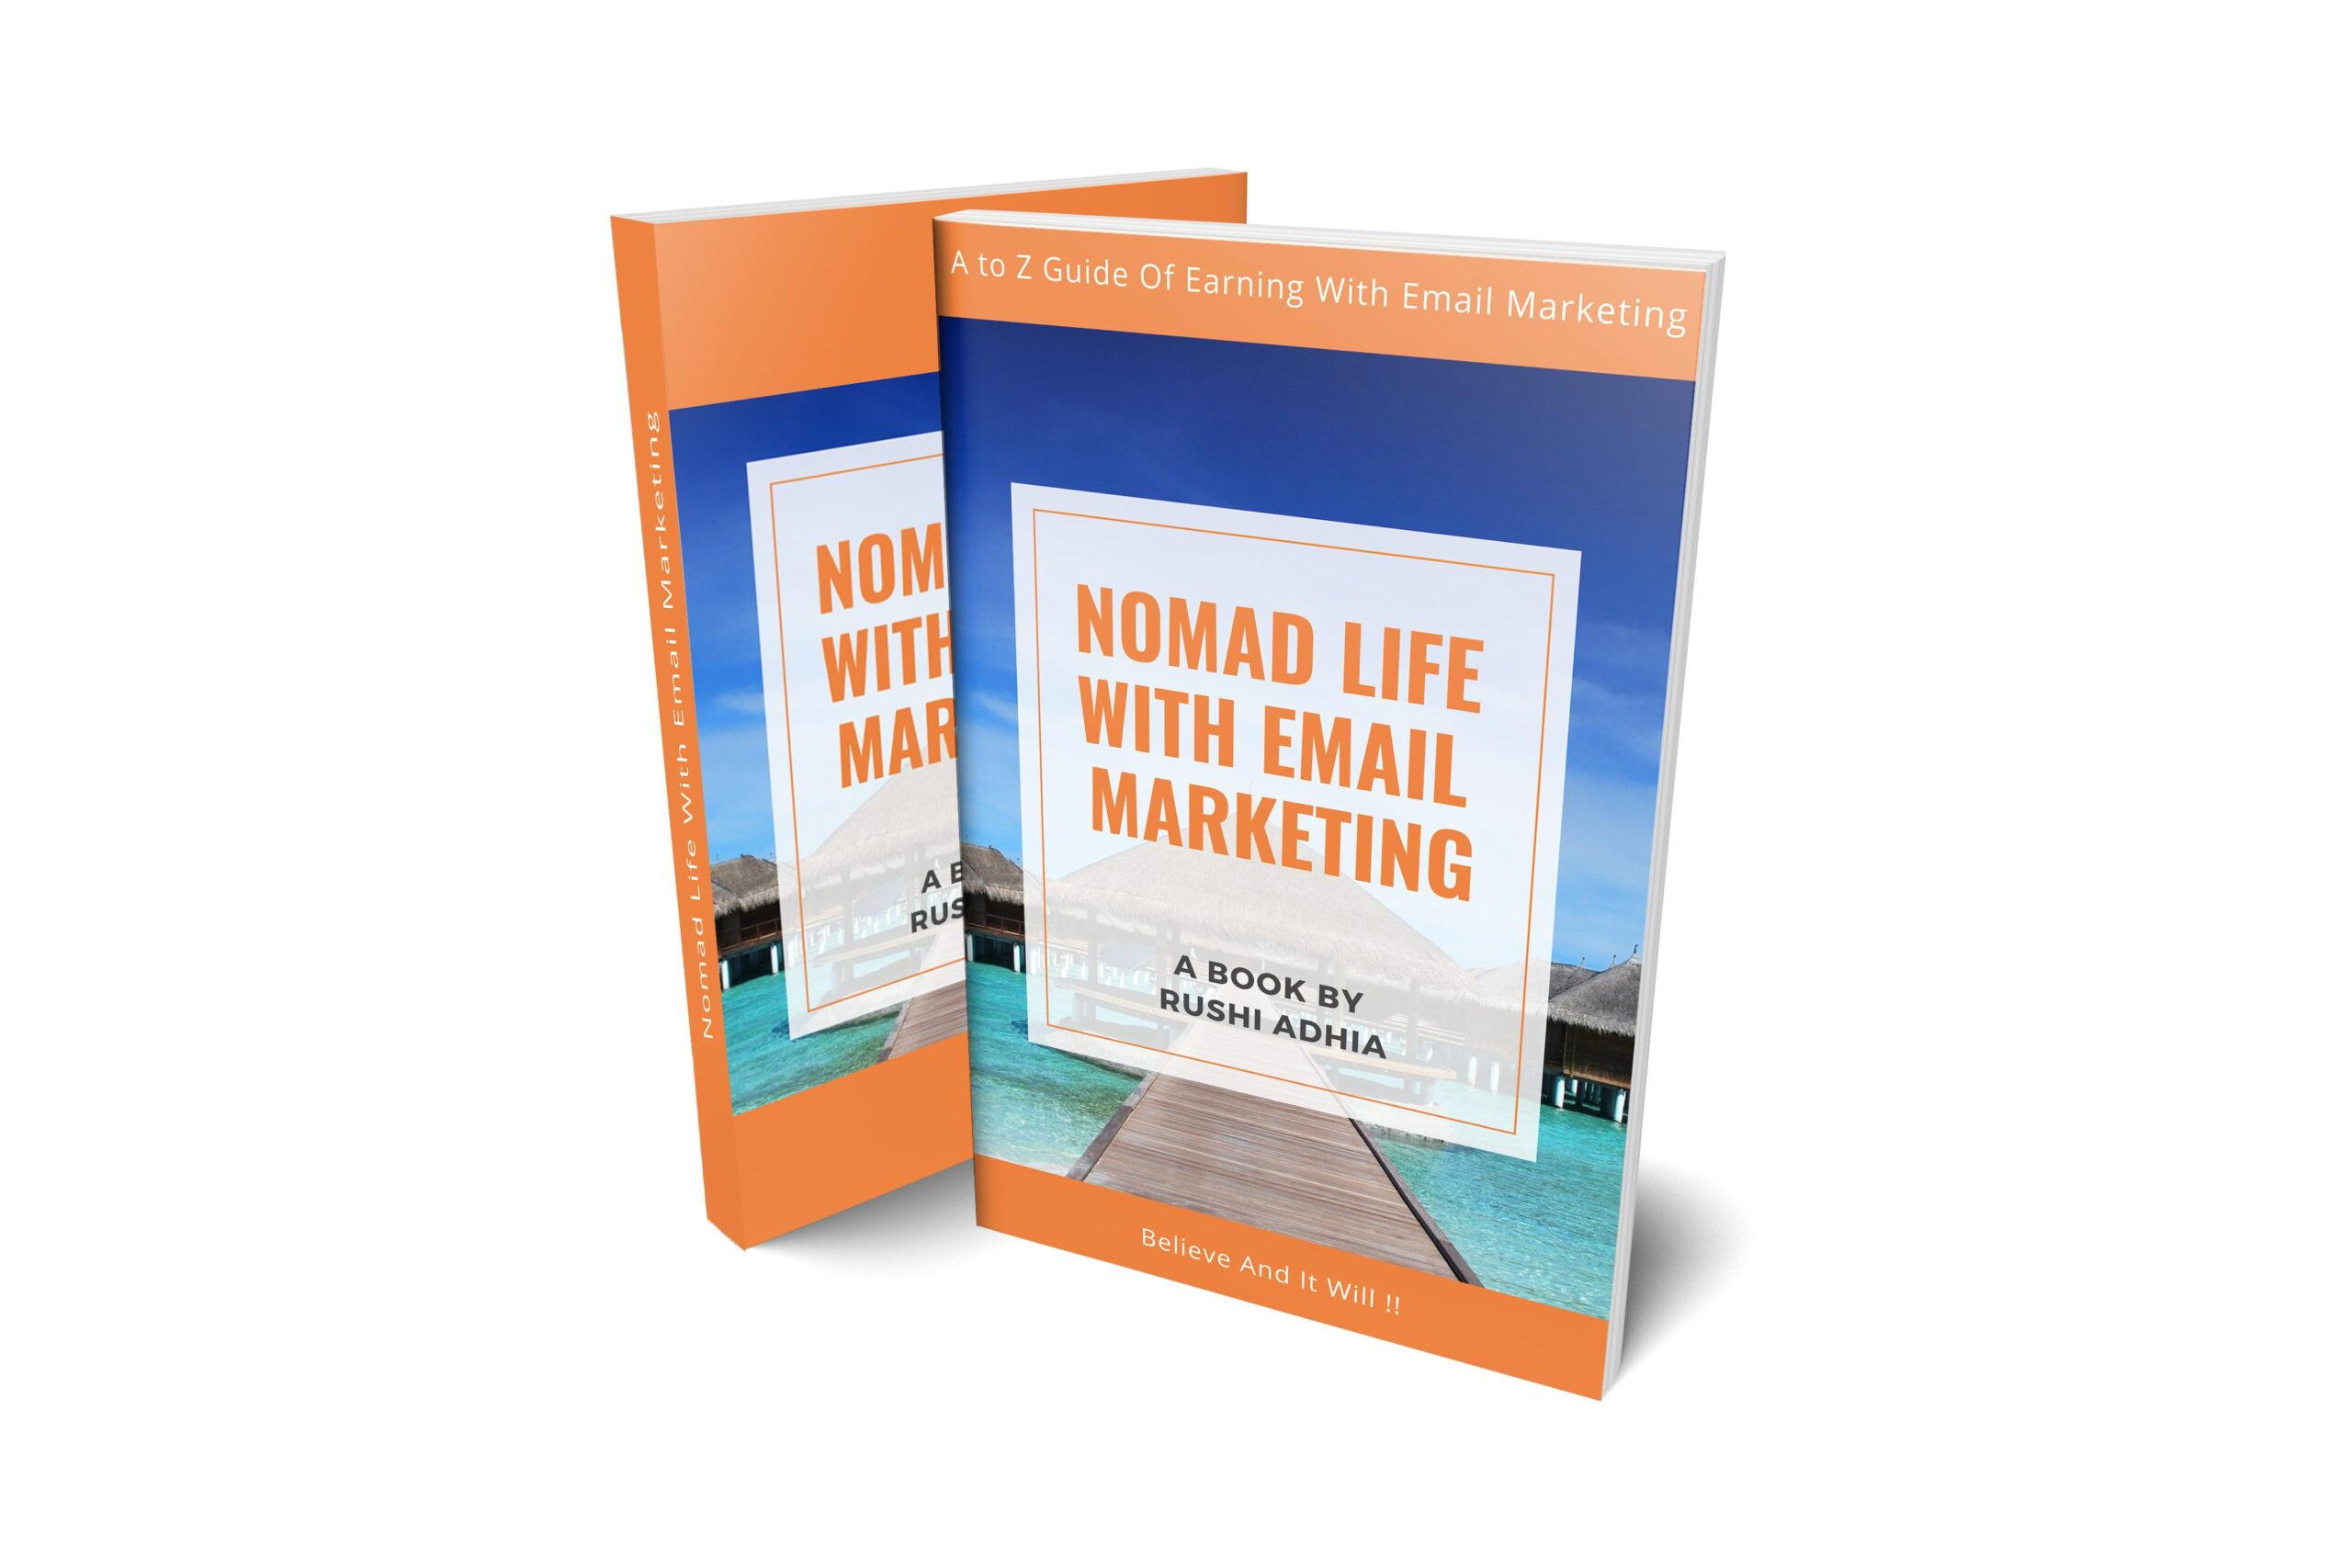 Email Marketing Book - Email Marketing Course Online - Learn Email Marketing Step by Step - How Can I Learn Email Marketing - Income By Email - Nomad Life With Email Marketing - Book Cover